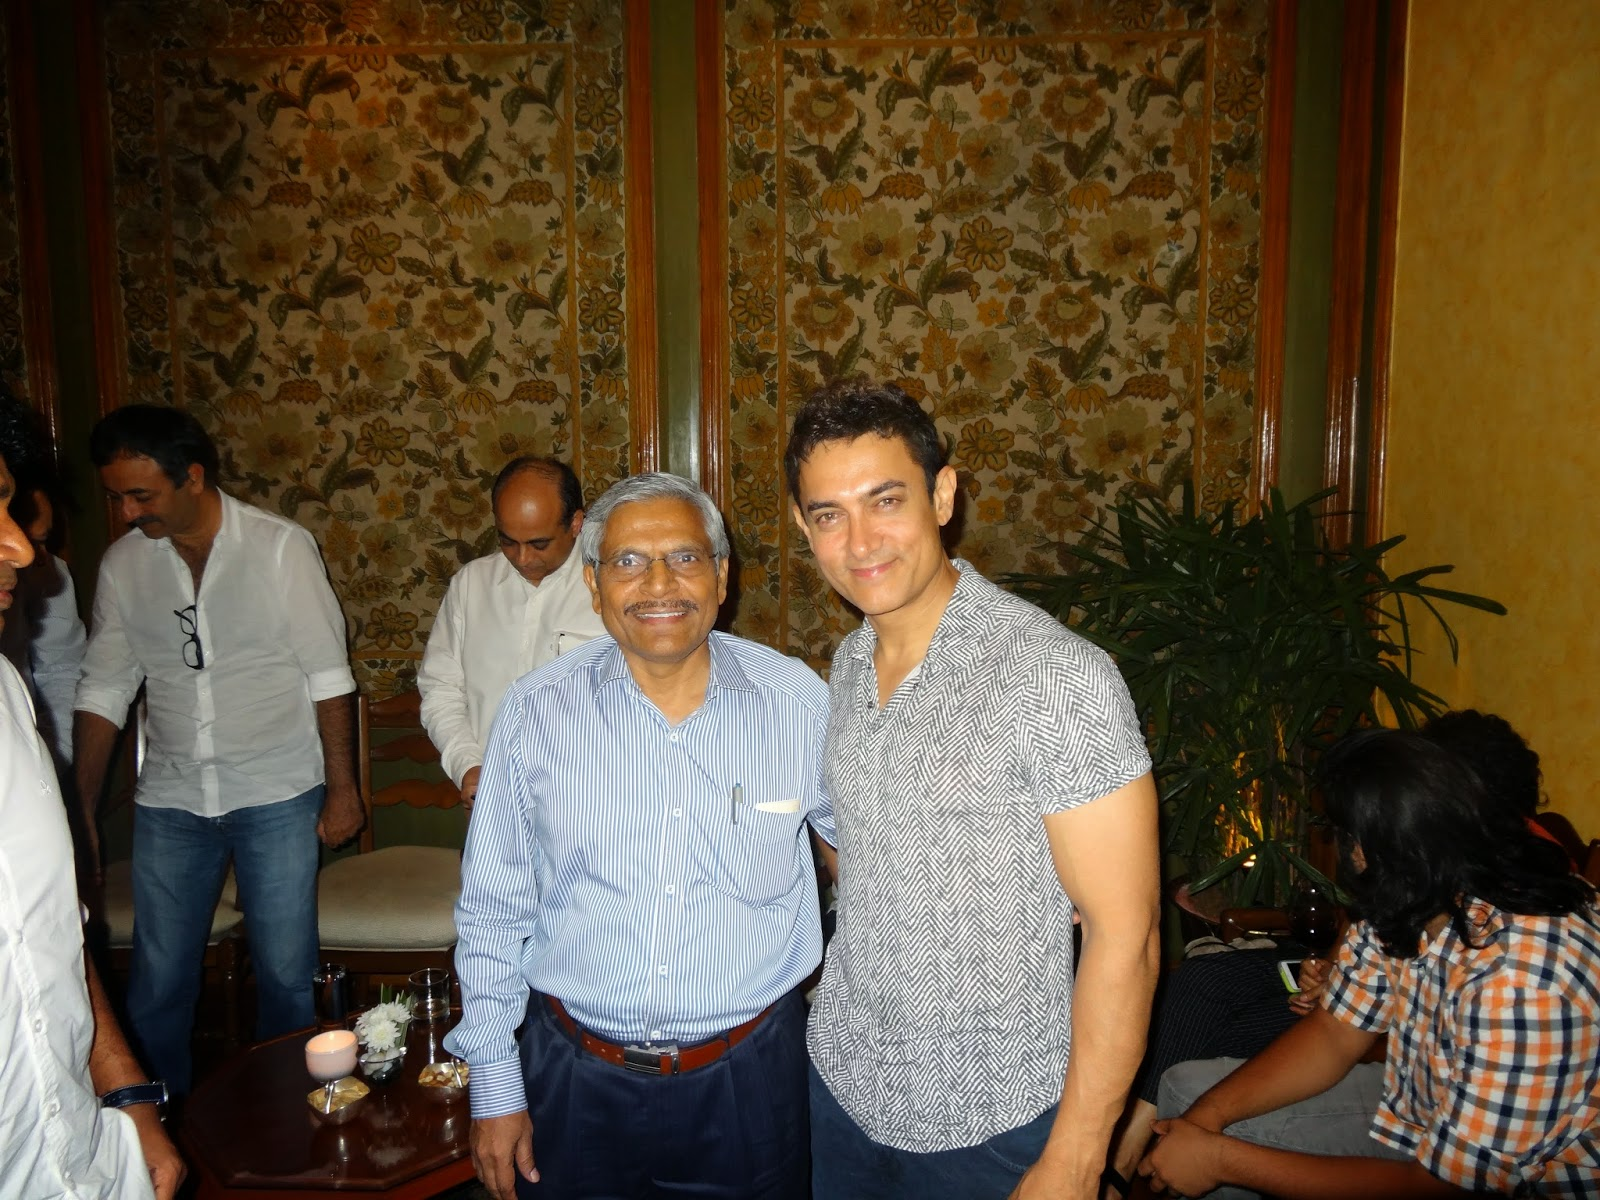 Aamir Khan with me in delhi during the shooting of Peekay